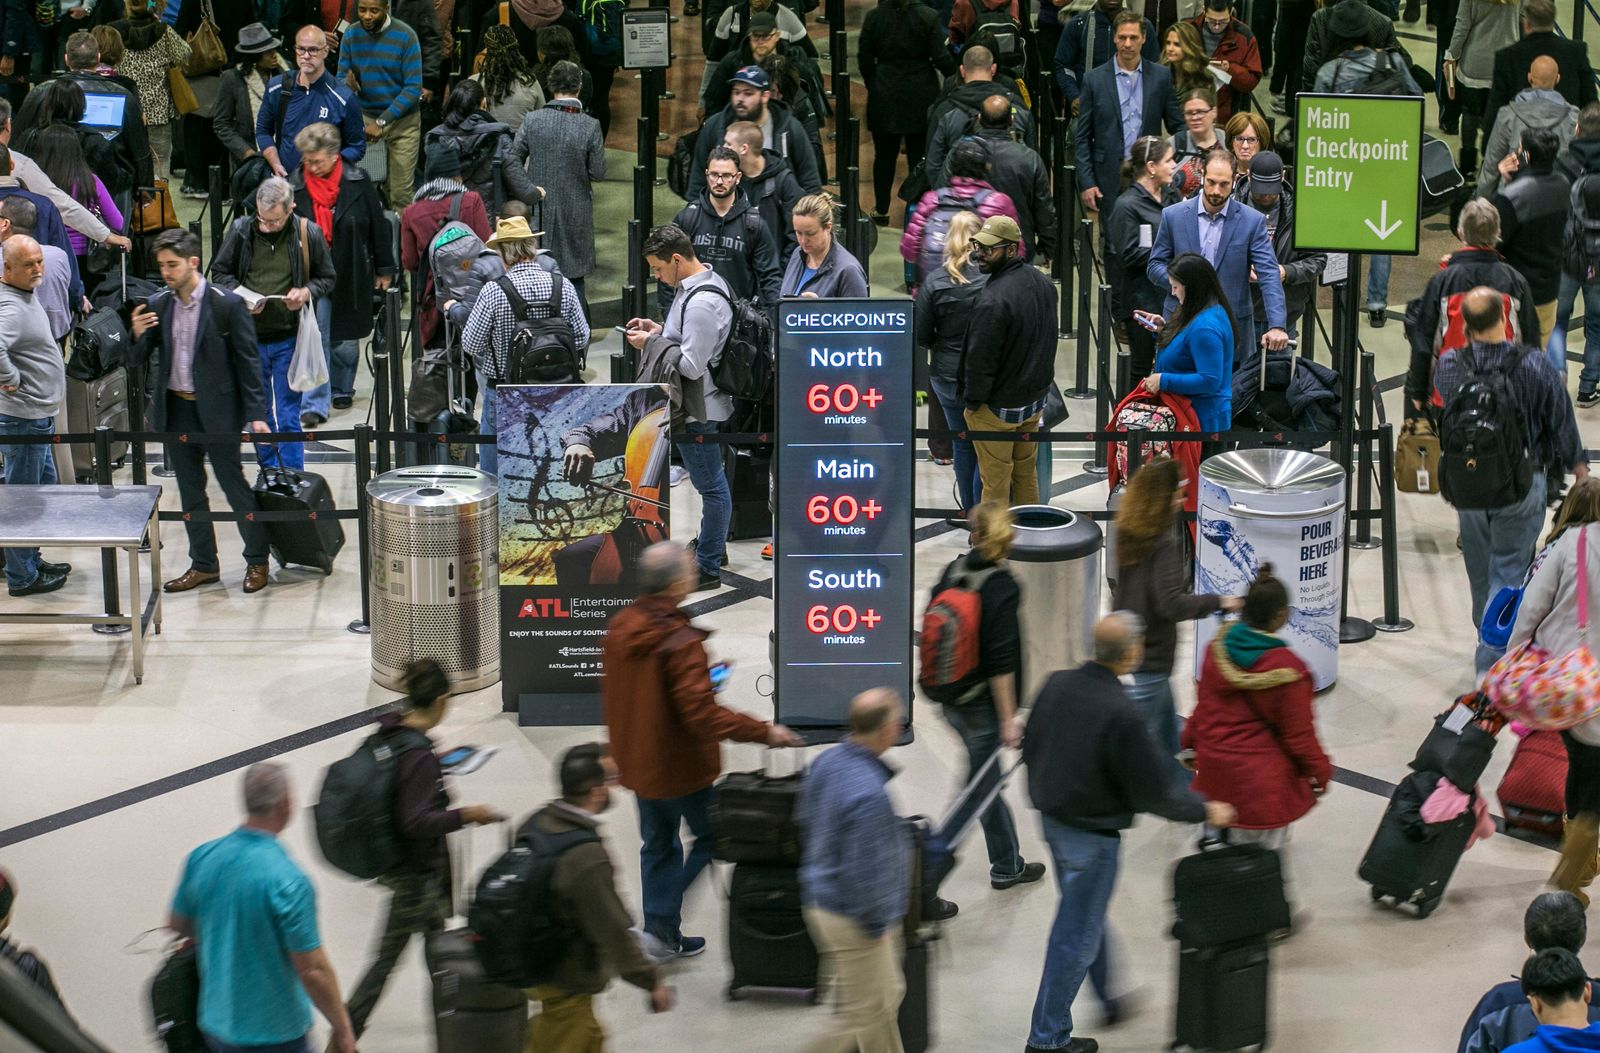 Security lines at Hartsfield-Jackson International Airport in Atlanta stretch more than an hour long amid the partial federal shutdown, causing some travelers to miss flights. (John Spink/Atlanta Journal-Constitution via AP)